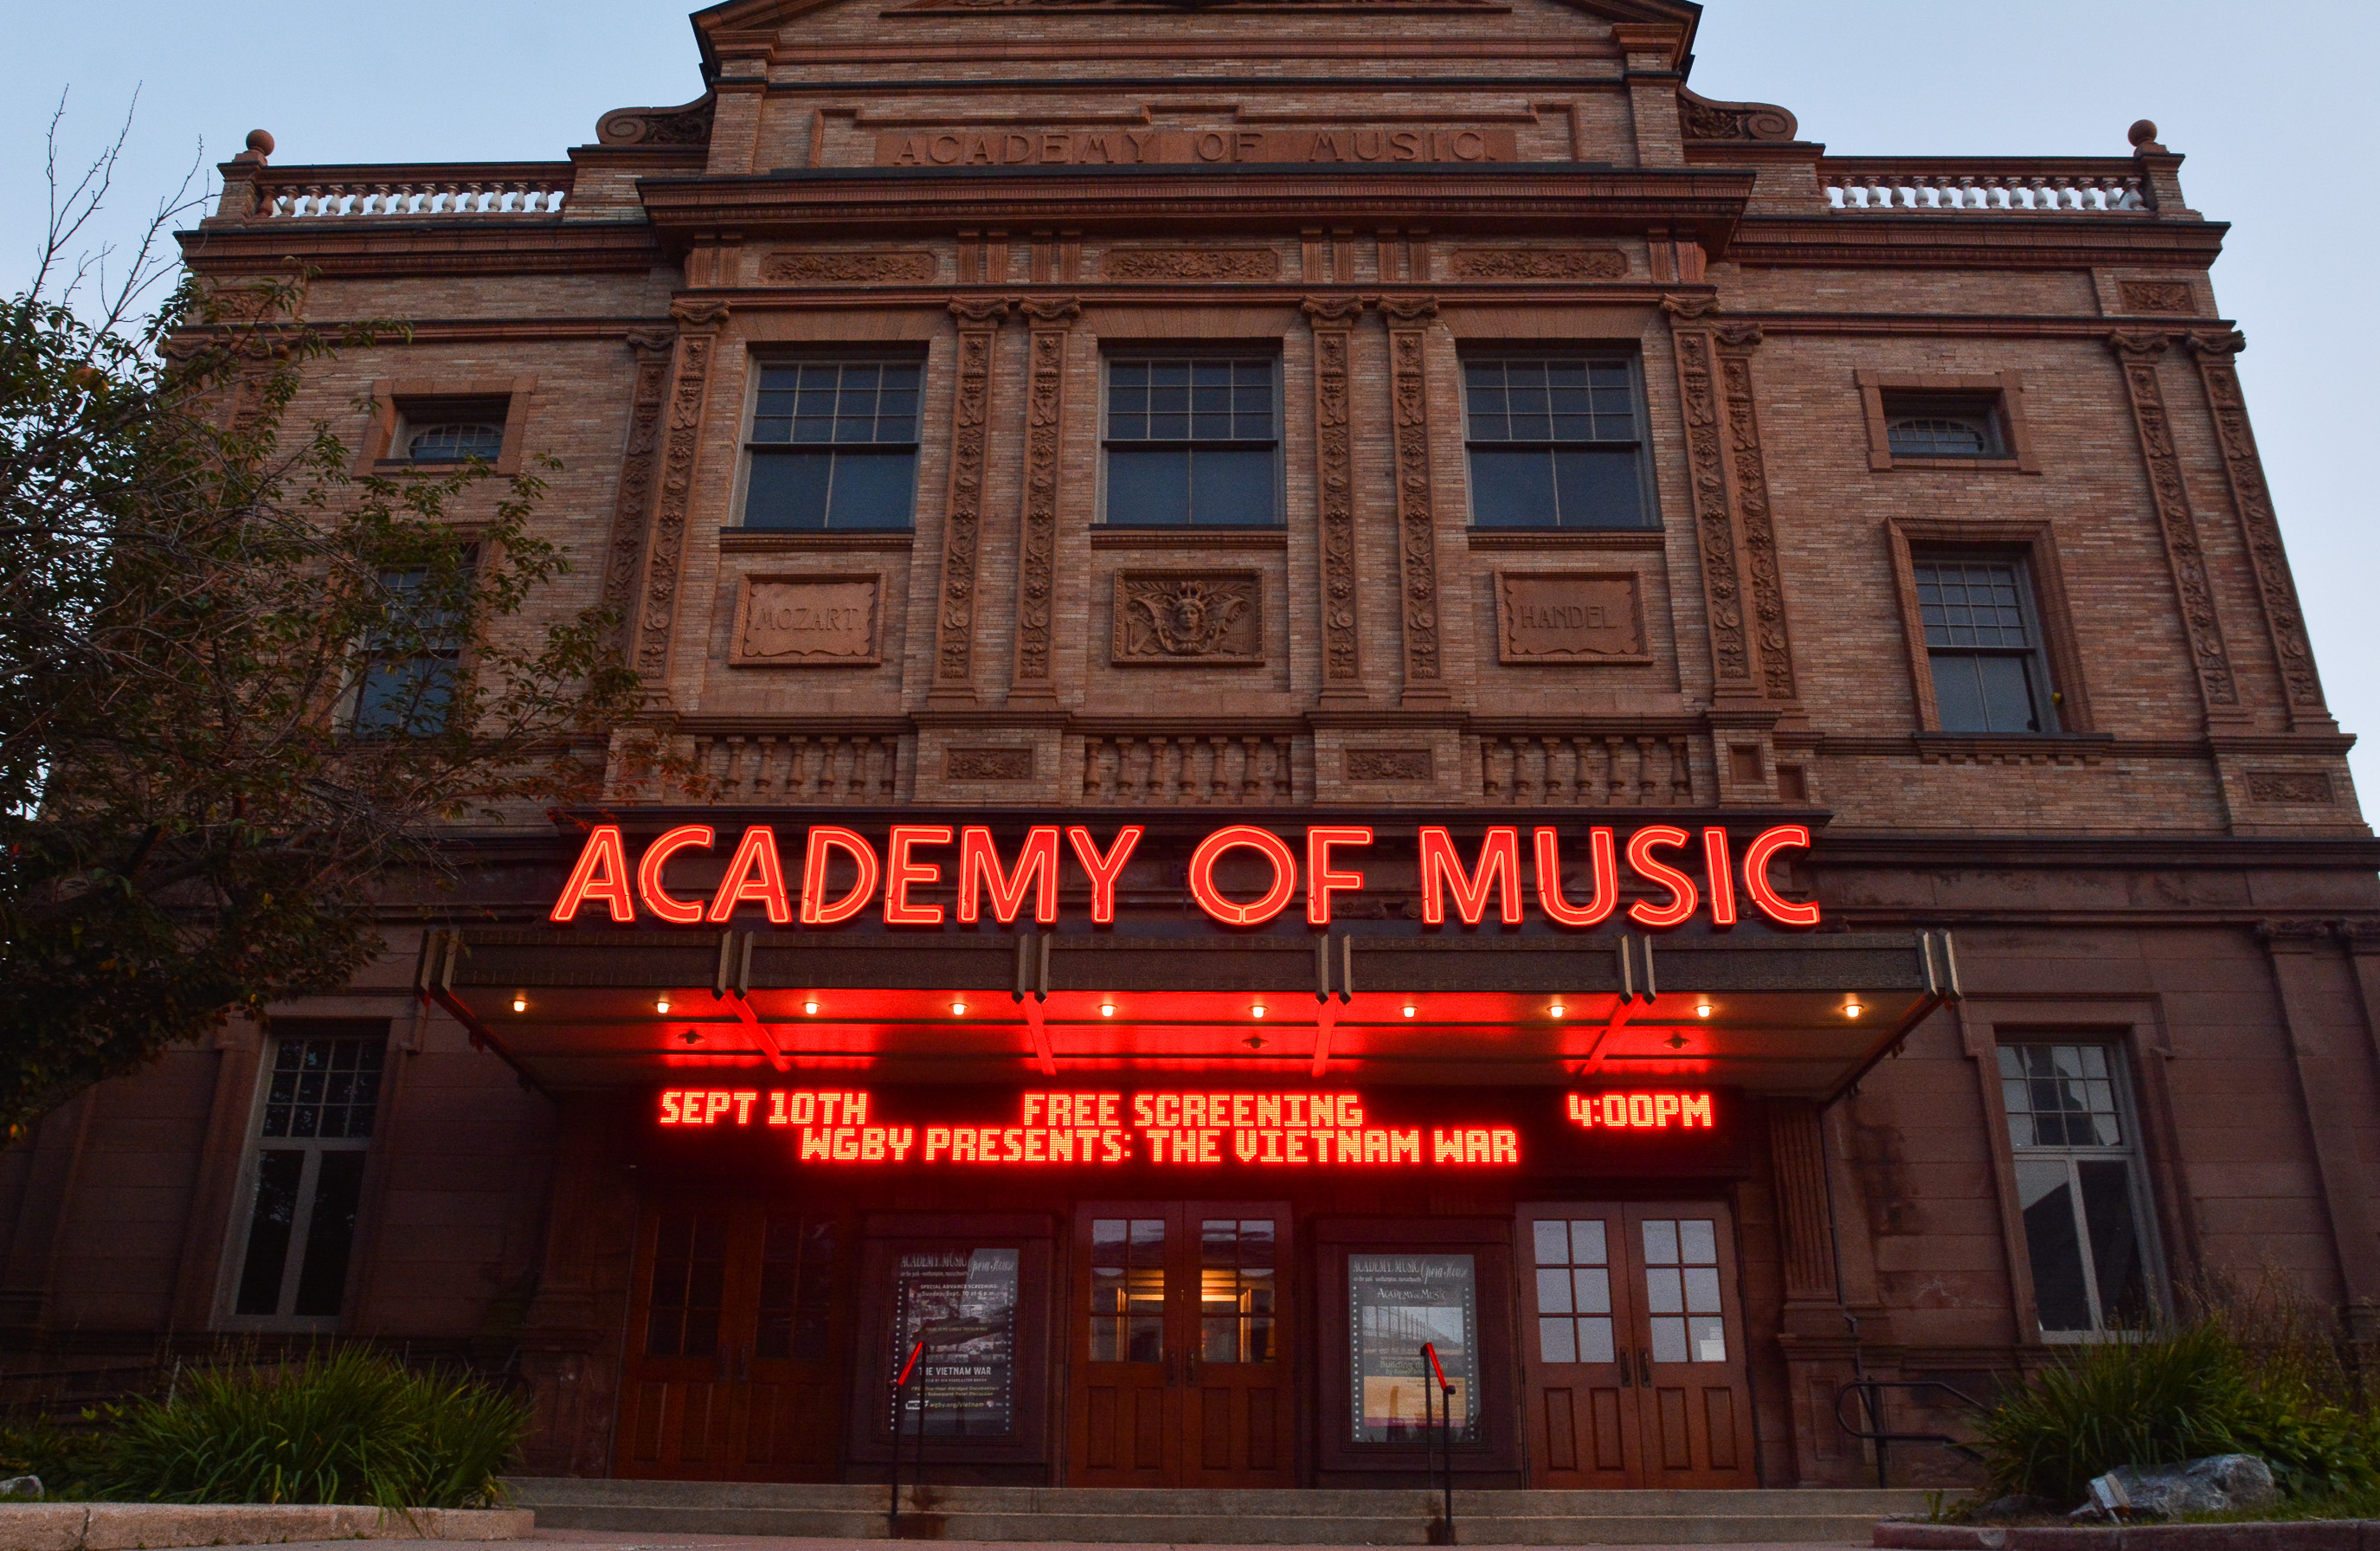 Cinemadope: Academy of Music hosts history tour, two great films this week